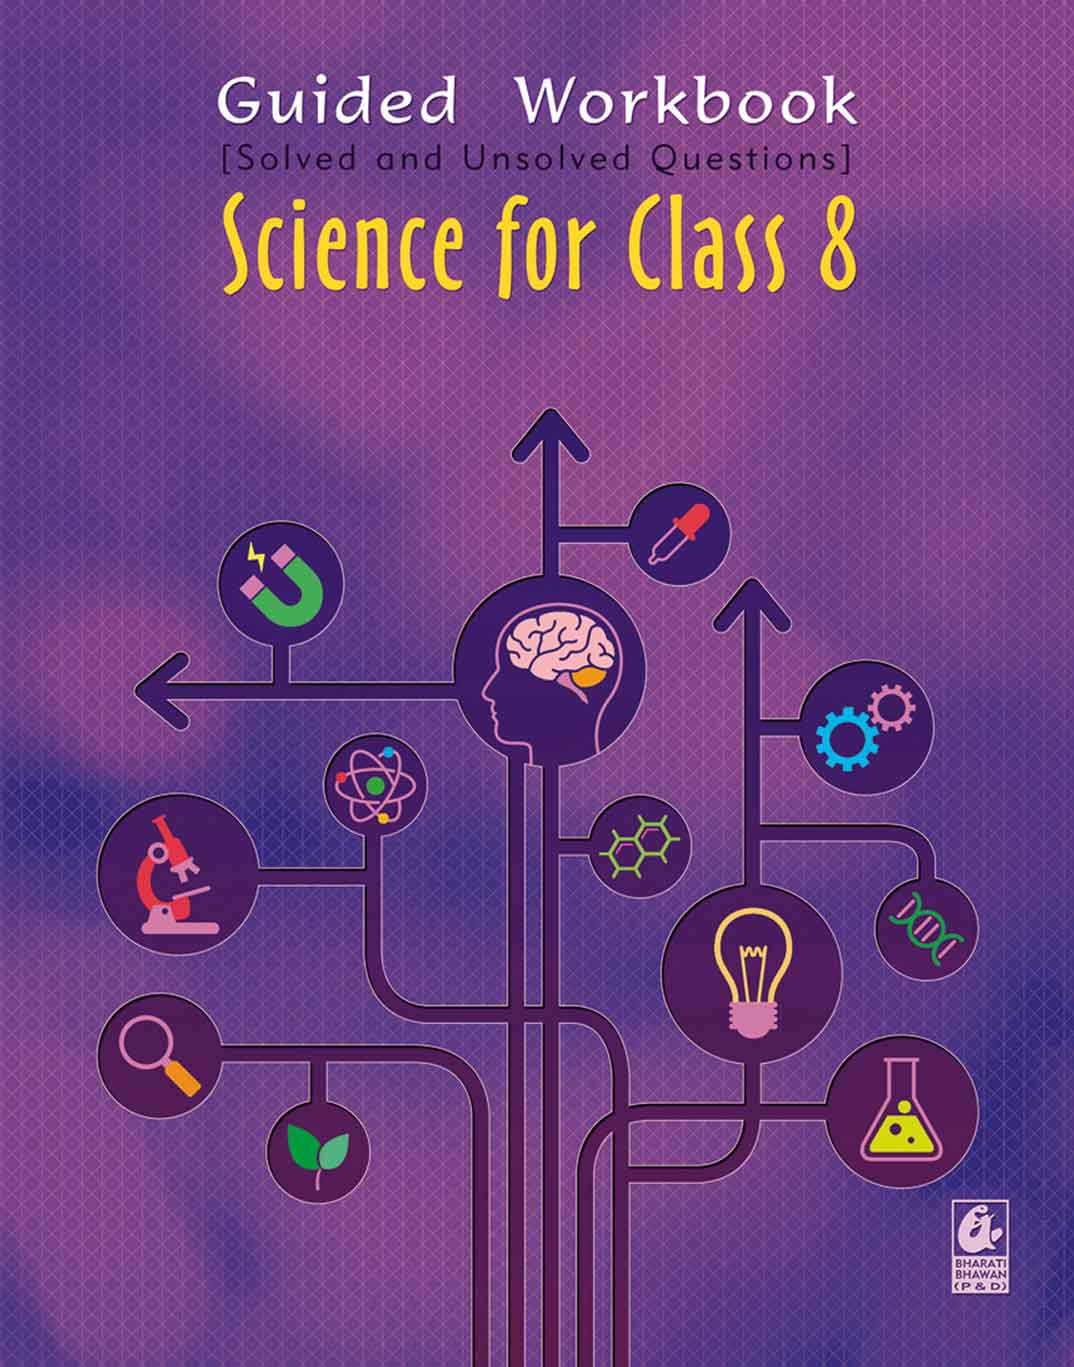 Guided Workbook: Science for Class 8